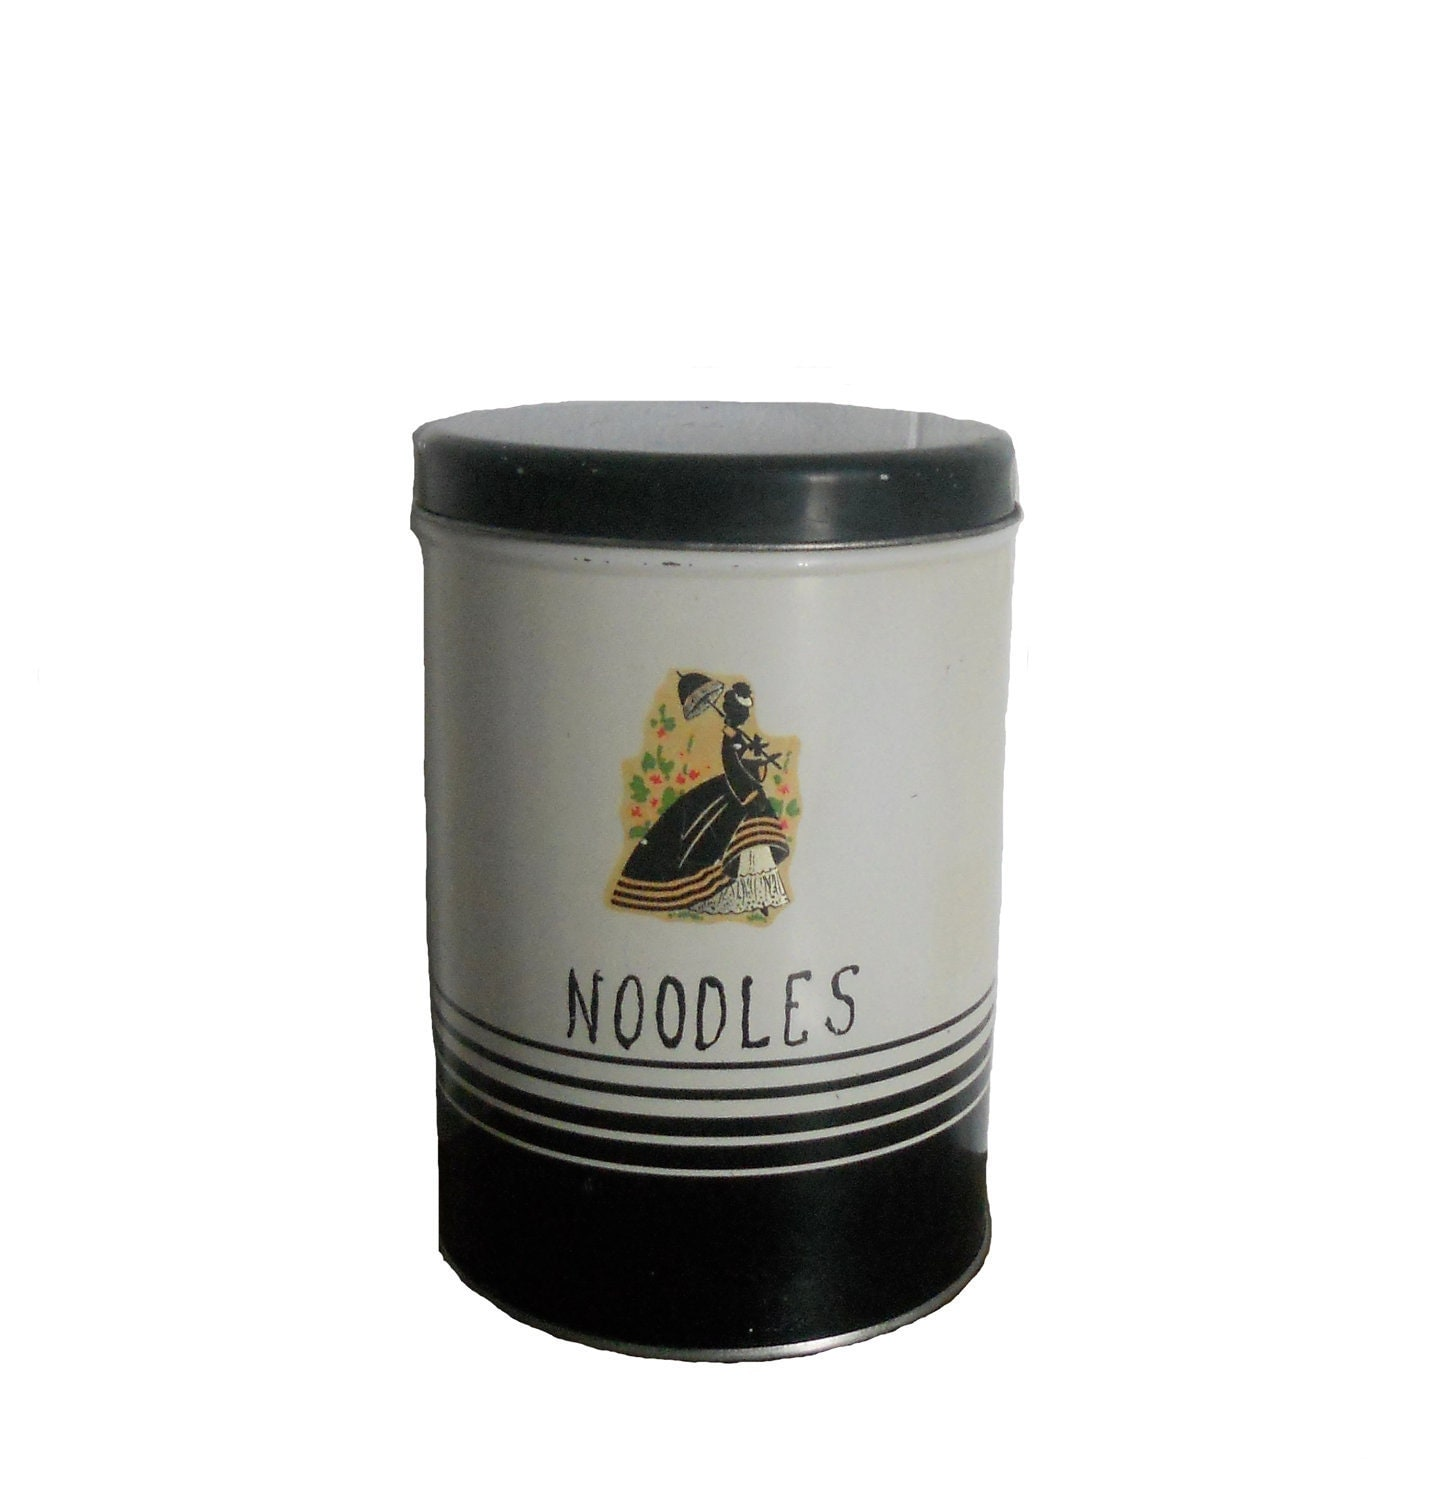 28 black kitchen canisters 4 piece canister set black black kitchen canisters vintage tin canister kitchen decor black and ivory noodles